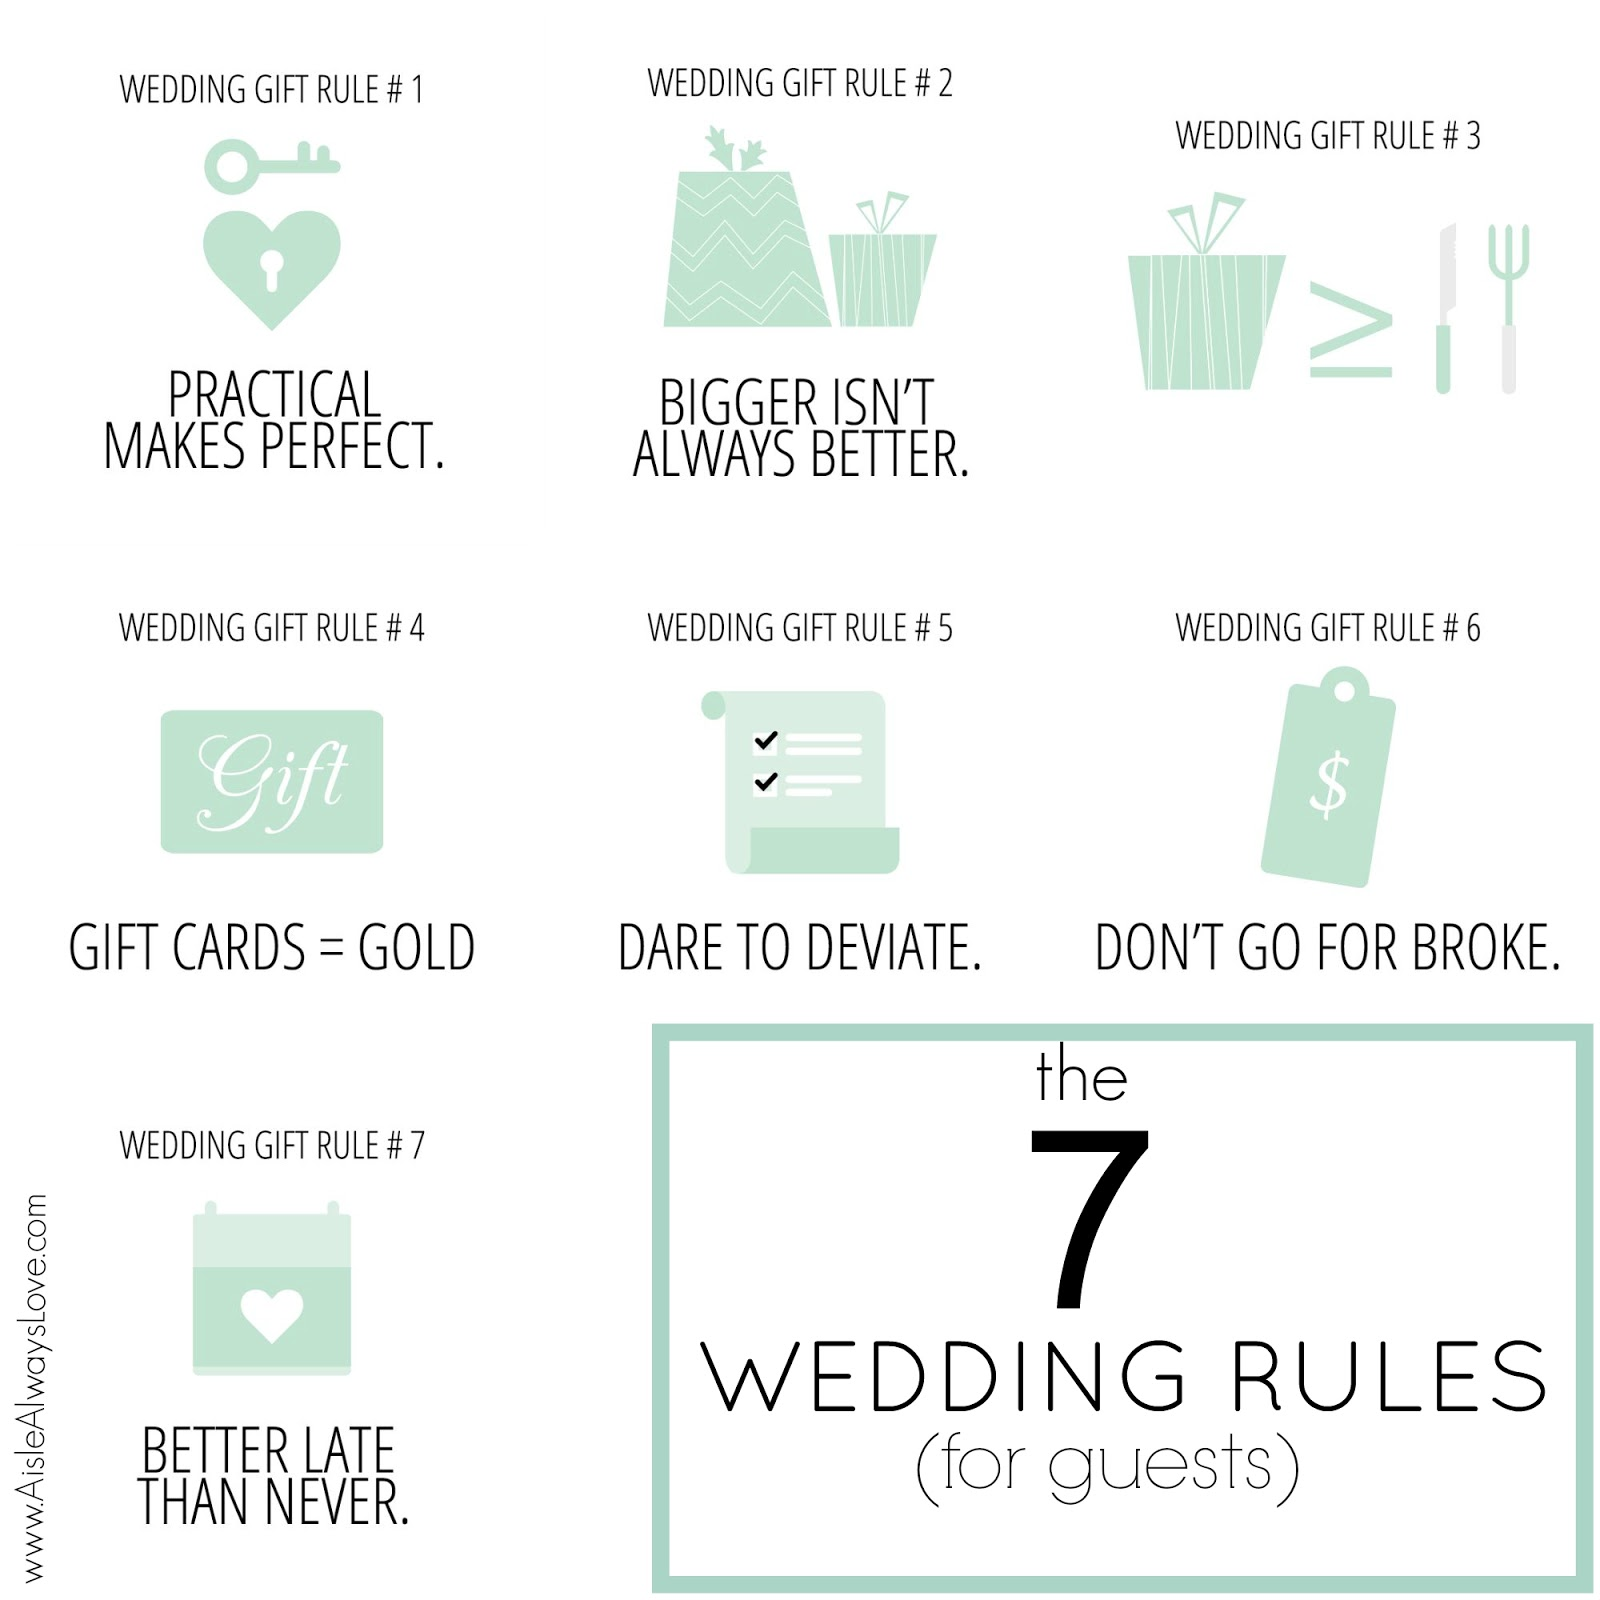 Wedding Gift Rules : ... past 7 weeks Ive shared 7 Wedding Gift Rules for guests to consider